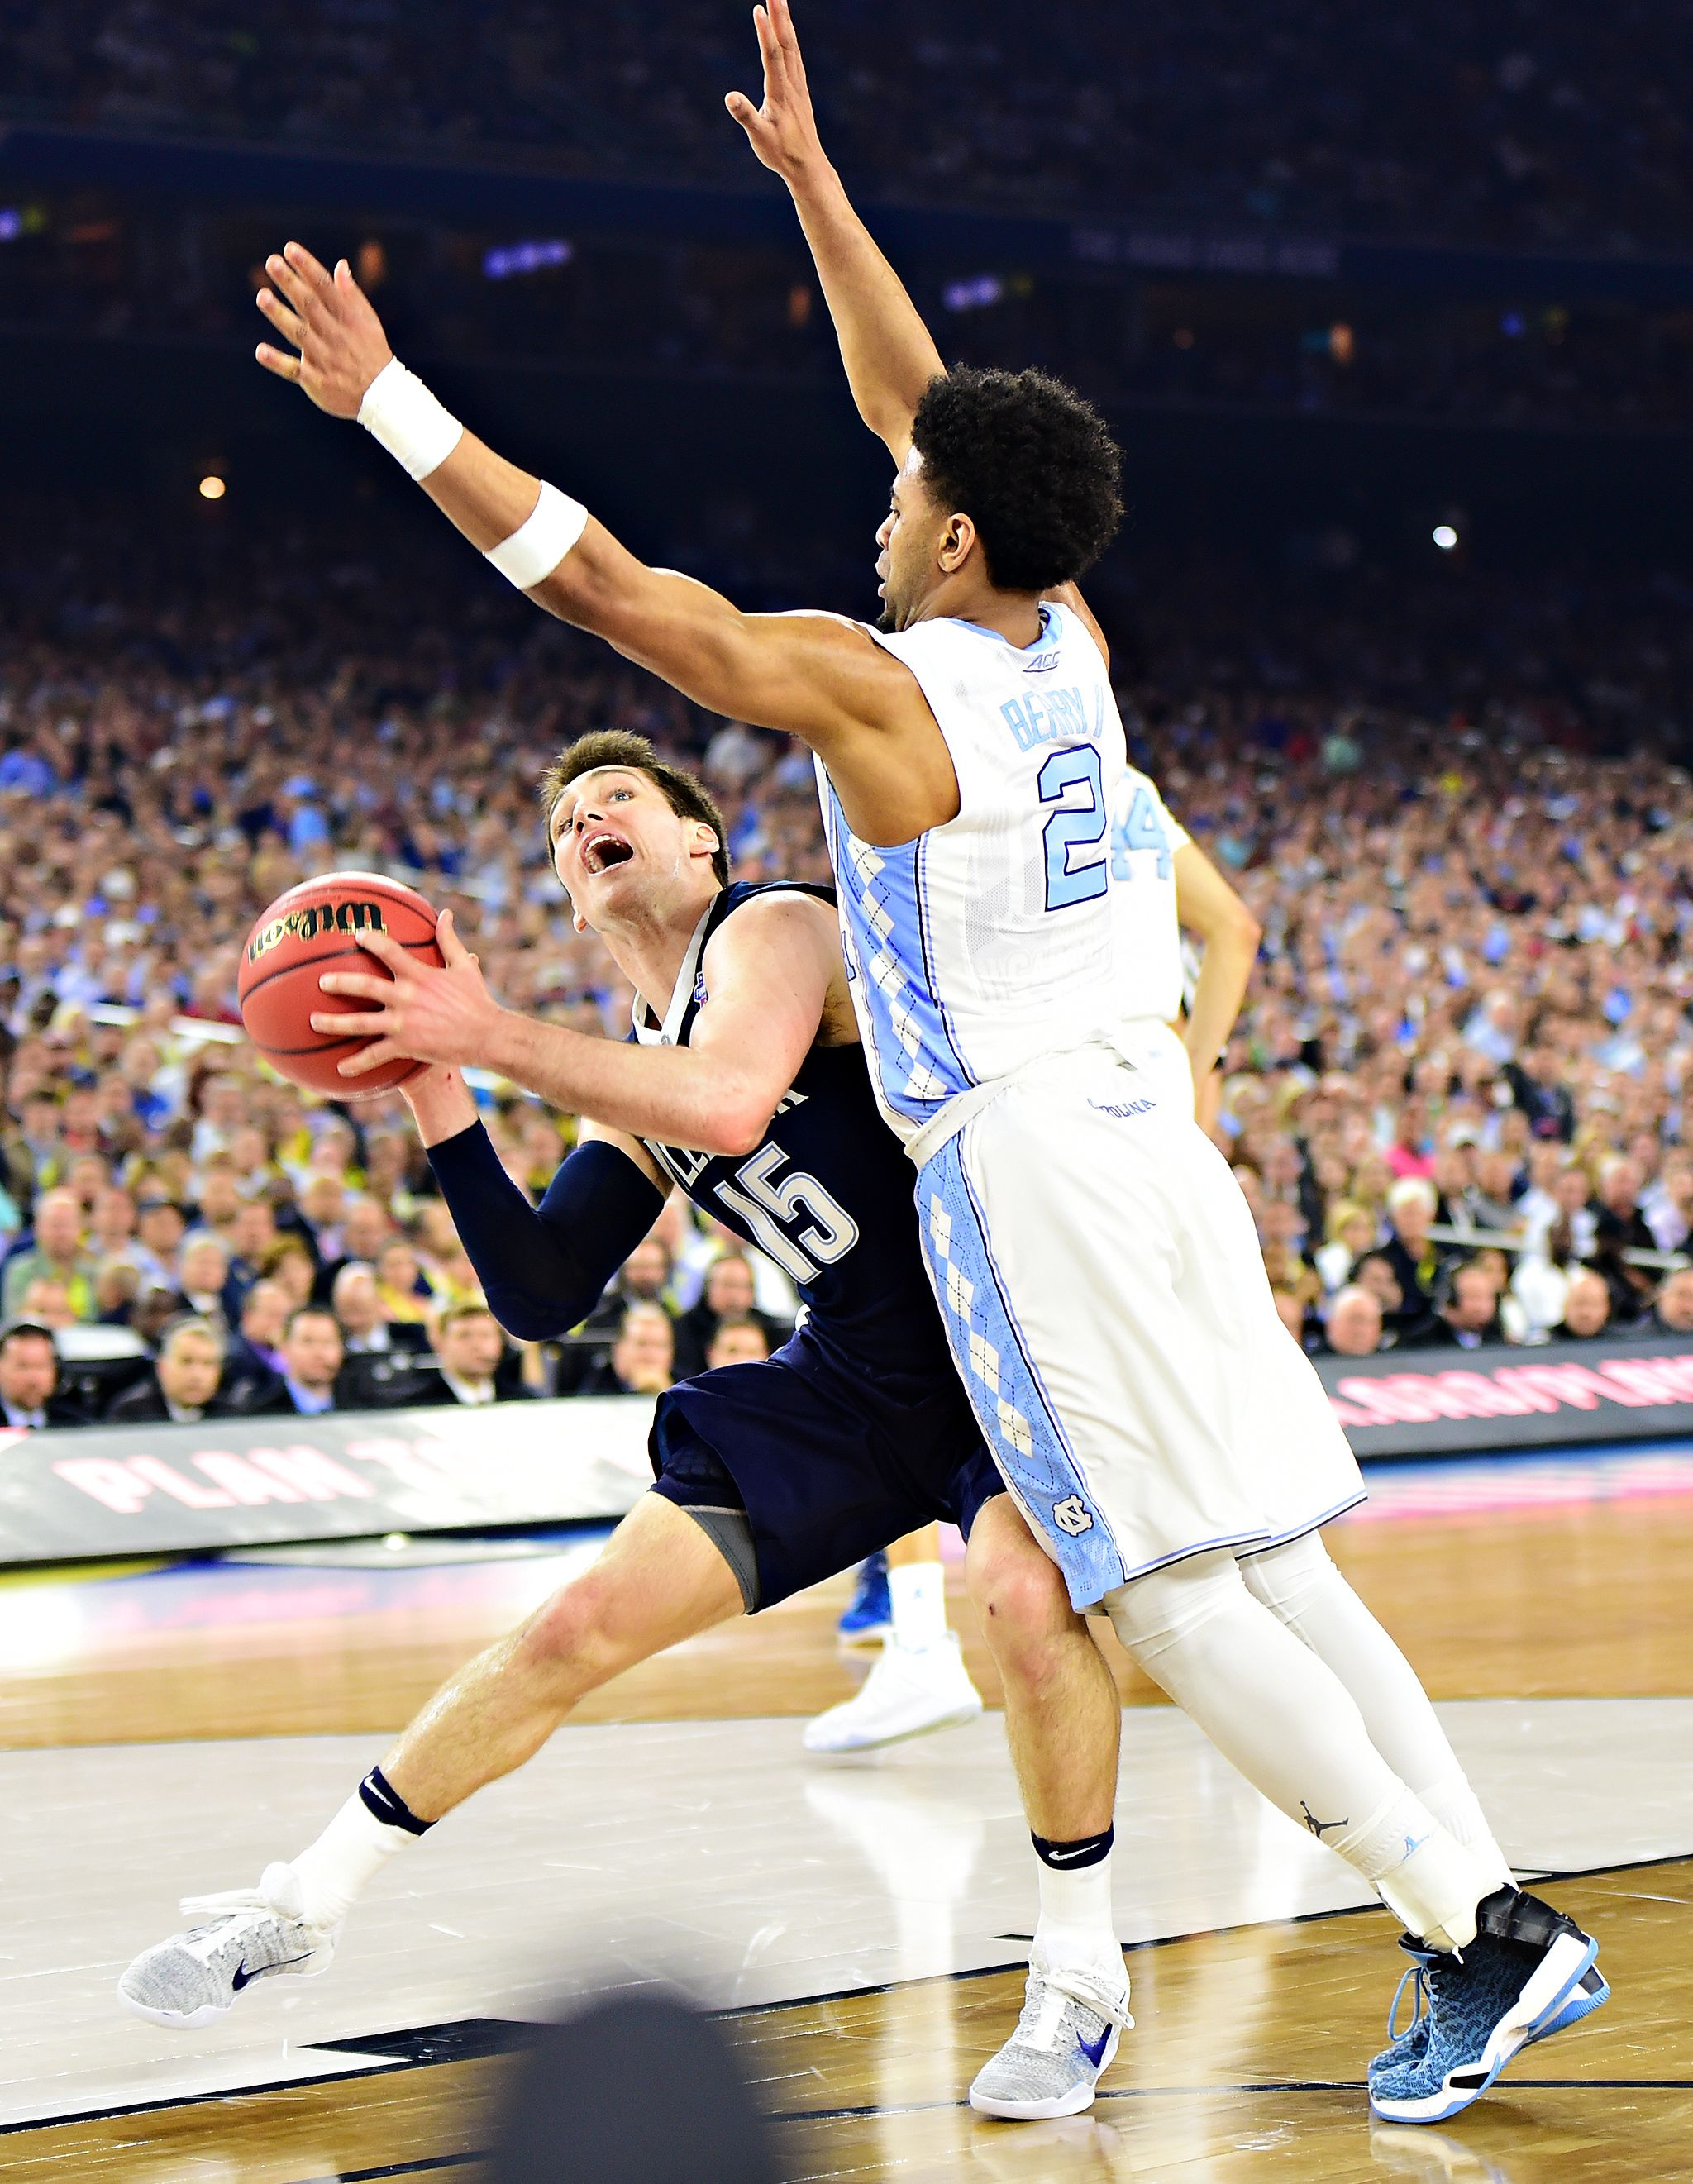 Ryan Arcidiacono - The 2016 NCAA Final Four in Pictures - ESPN